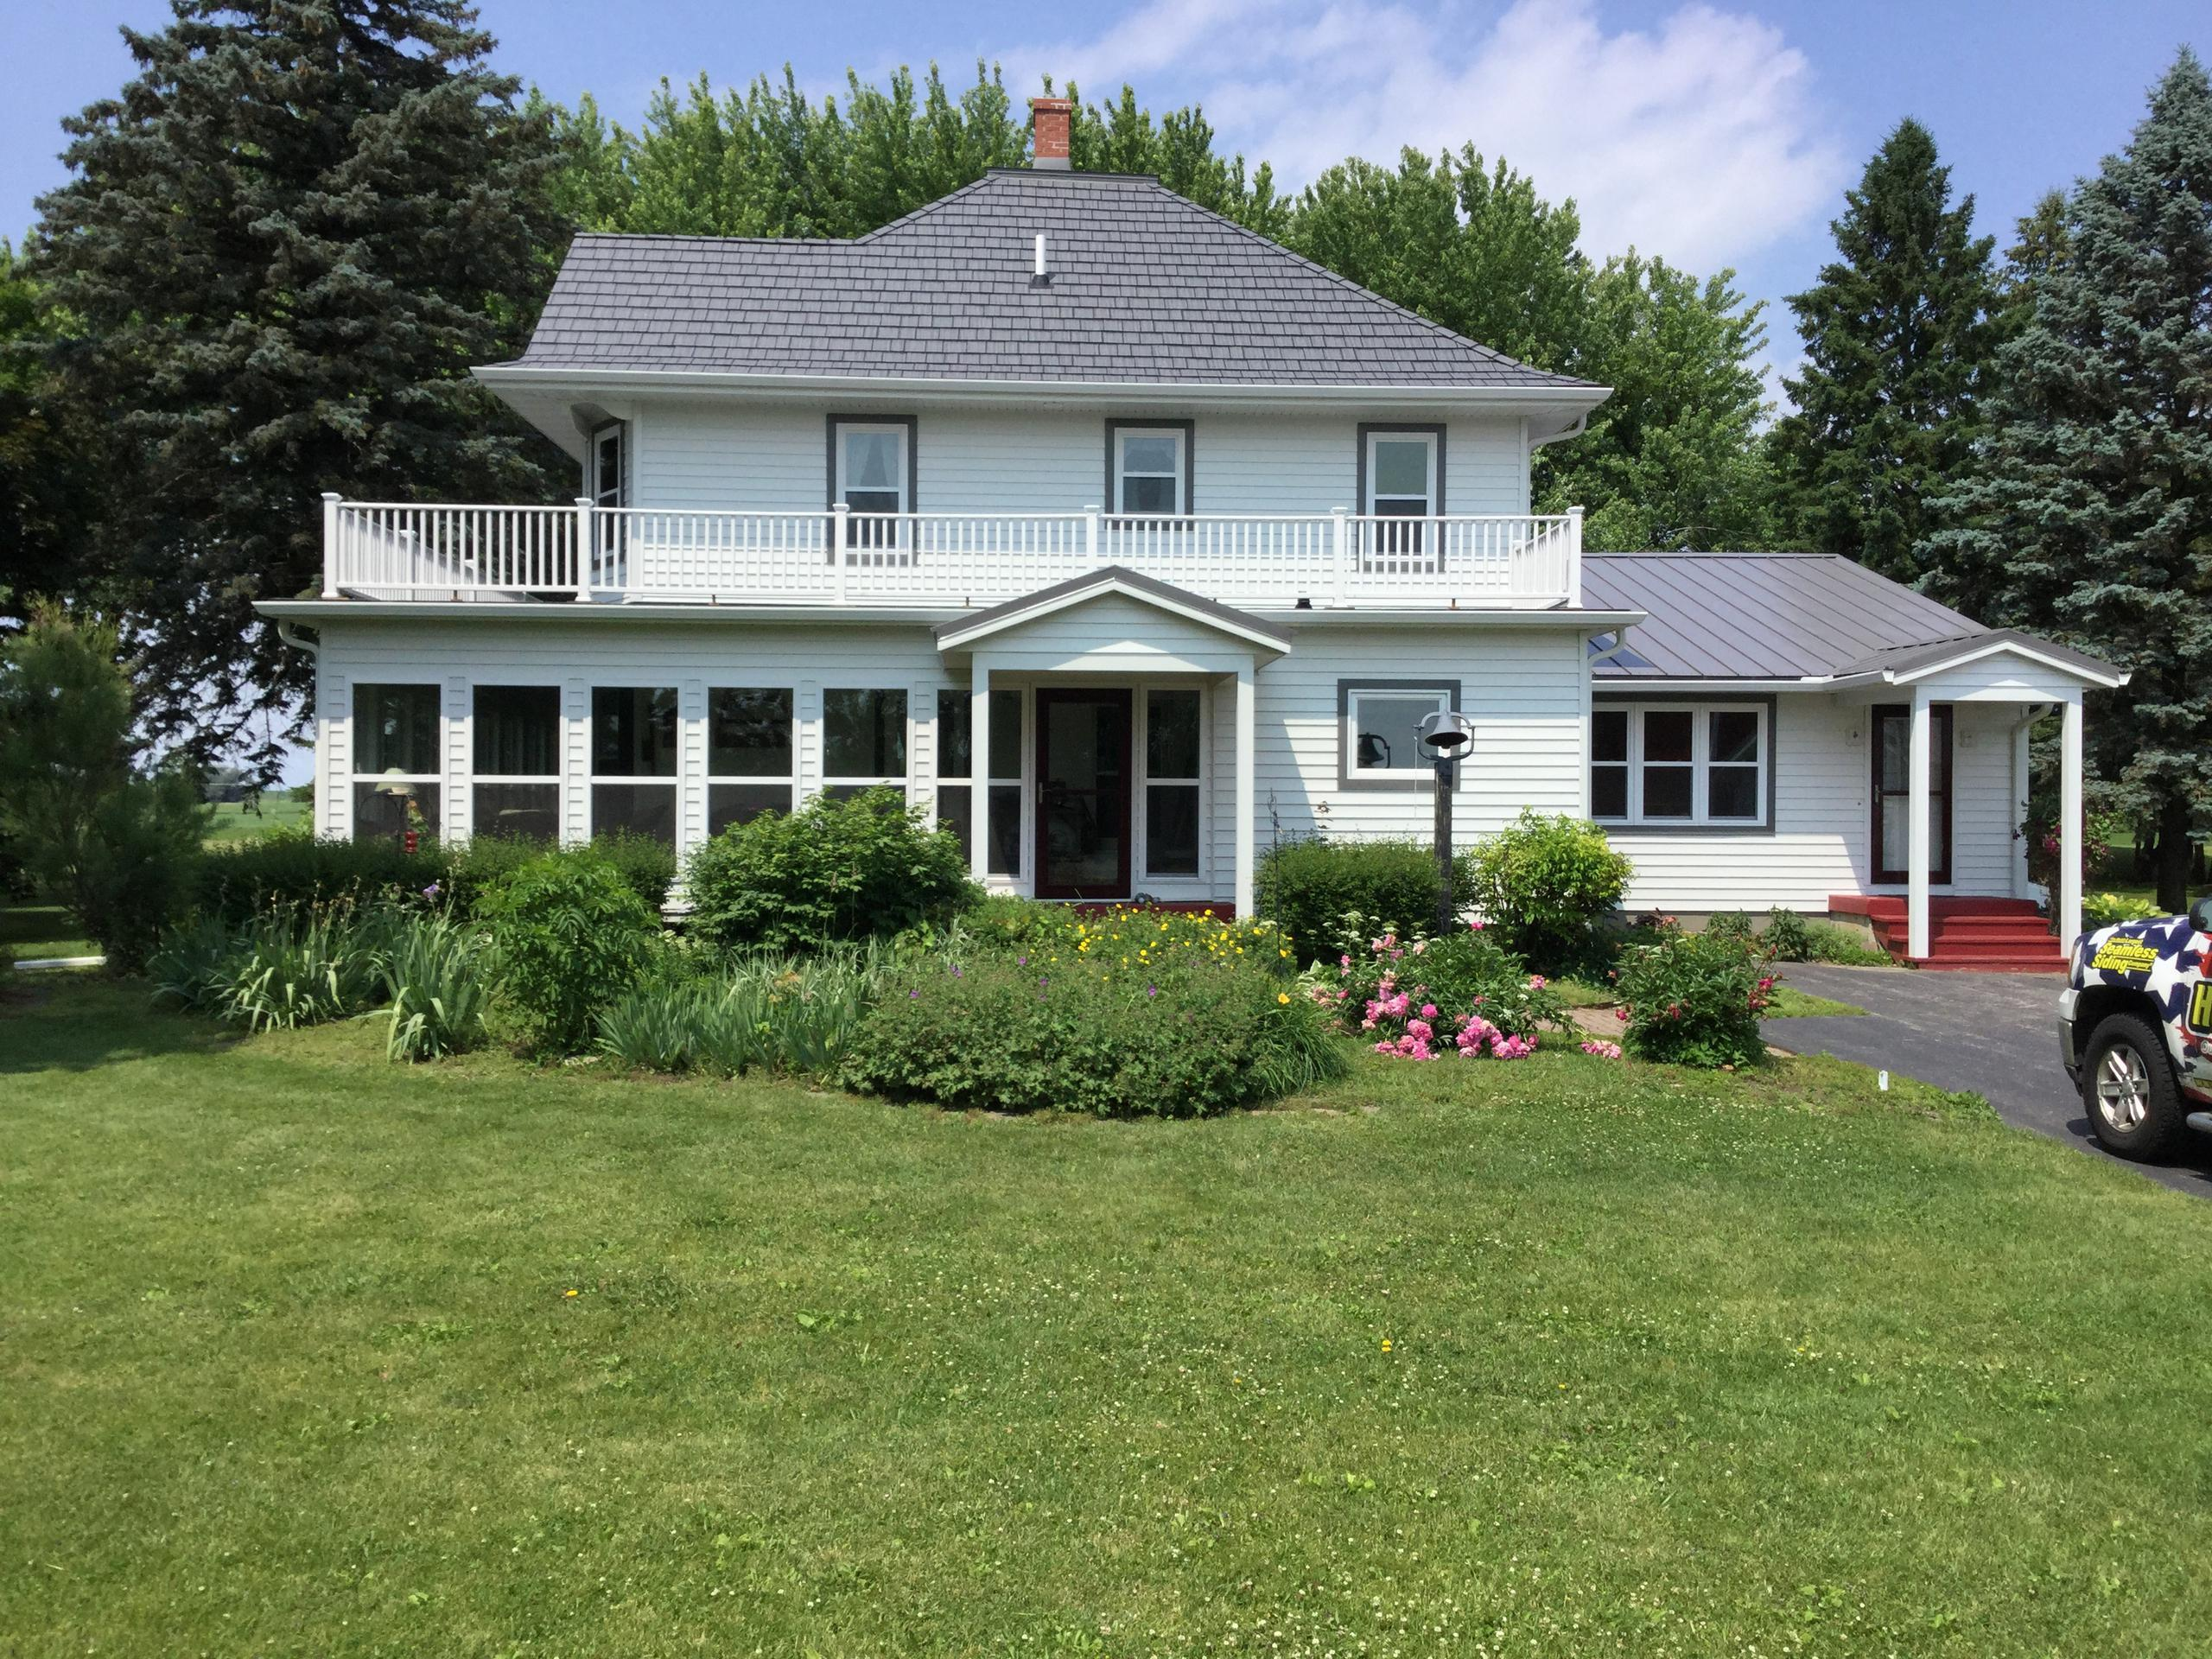 This charming home in rural Wisconsin had Generations Shake Charcoal HD roofing installed because of its ability to resist wind speeds up to 160 mph.